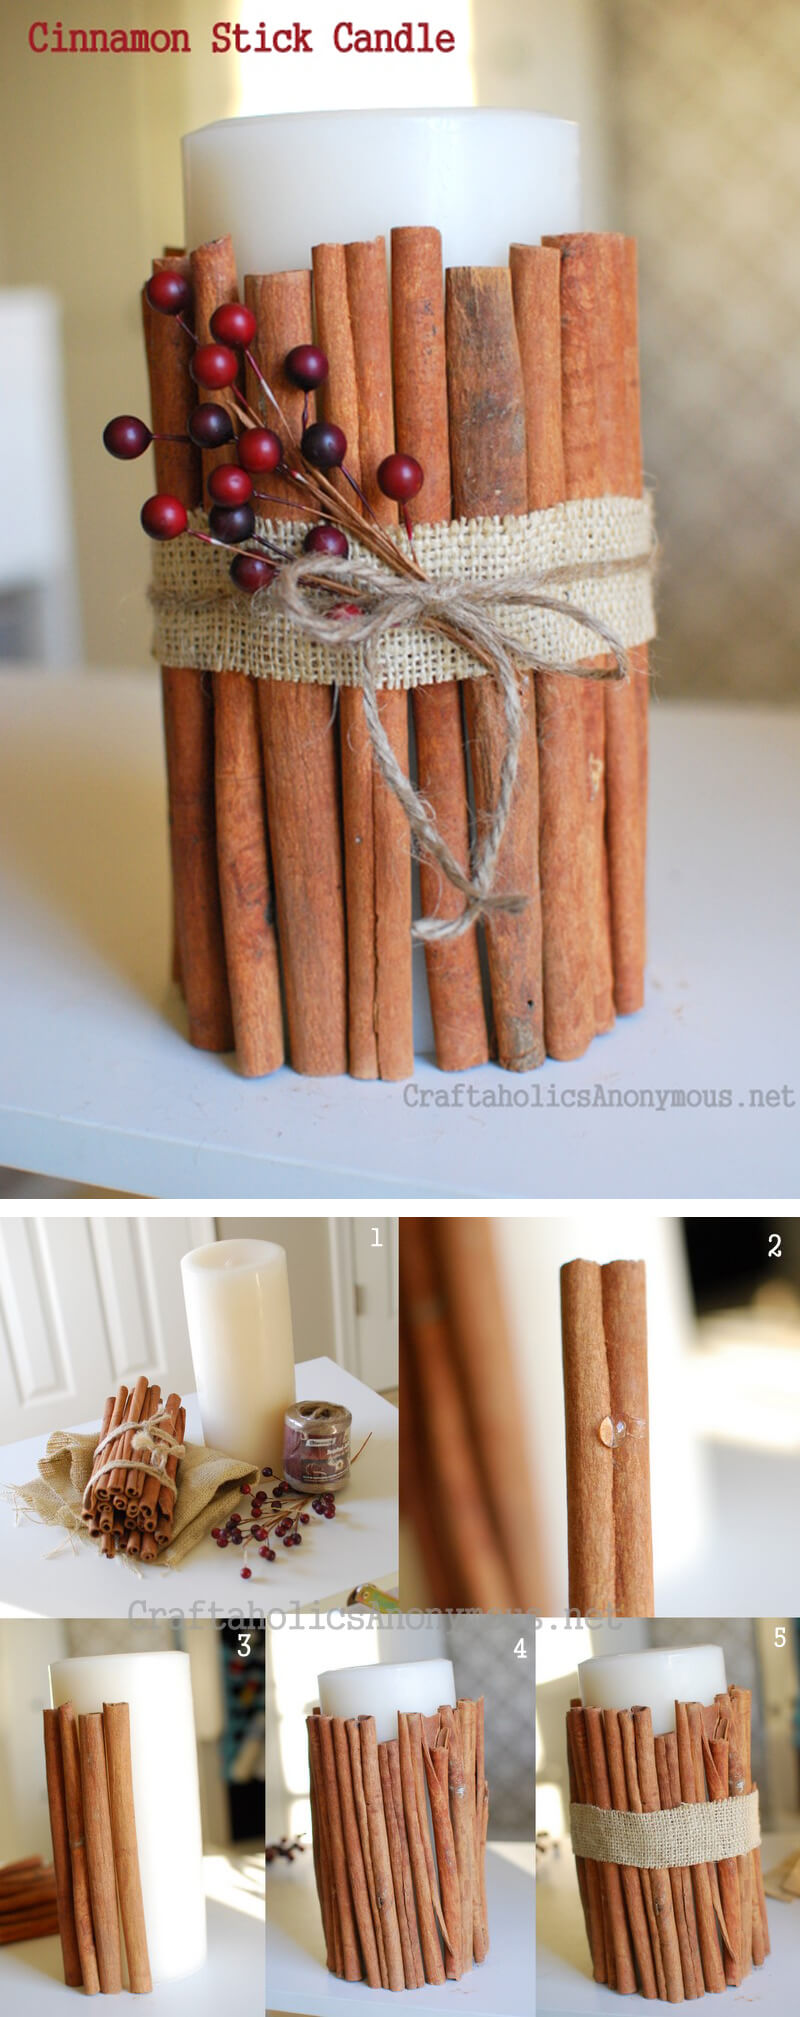 Classy Cinnamon Stick Decorated Candle